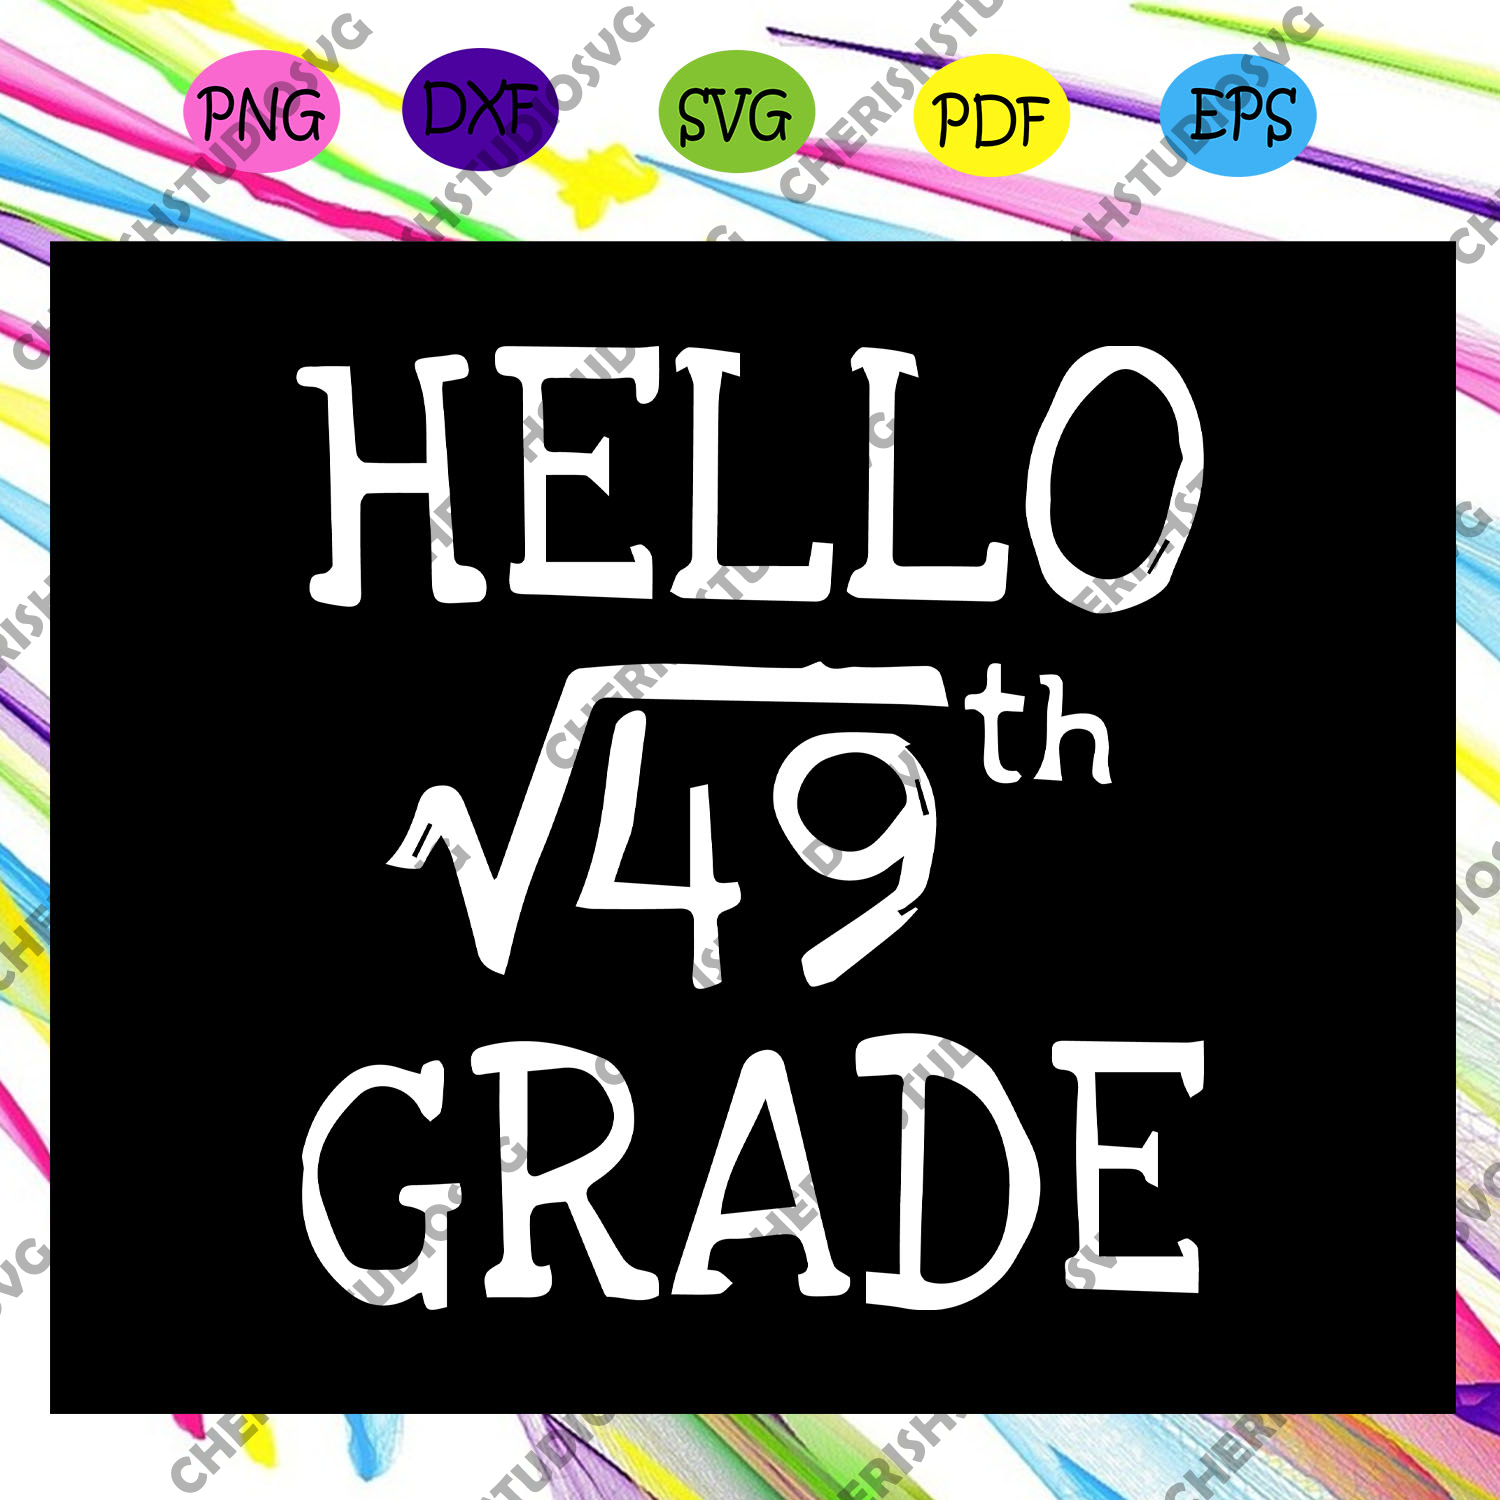 Hello √49th grade, first day of school, hello school, hello school svg, preschool squad, For Silhouette, Files For Cricut, SVG, DXF, EPS, PNG Instant Download